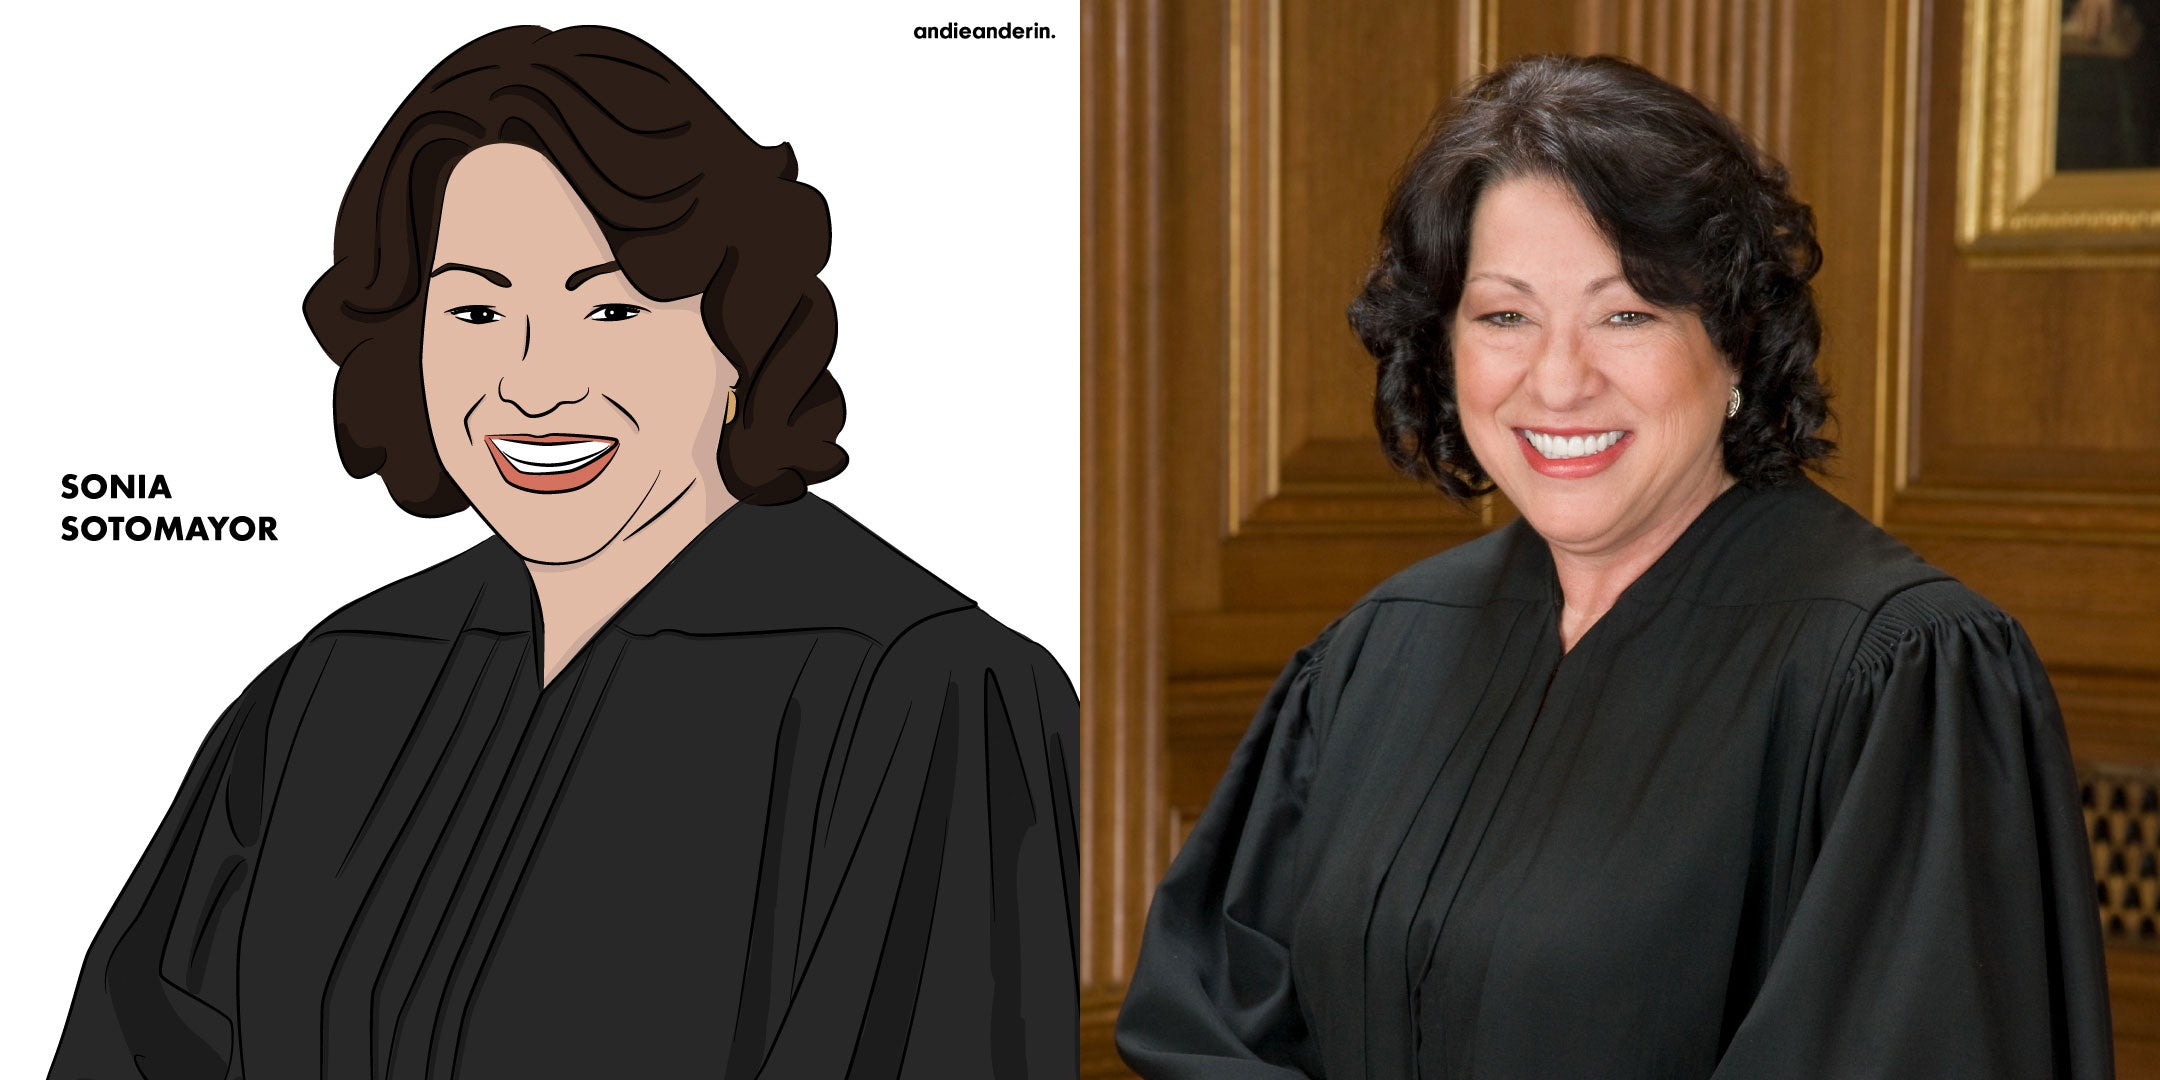 andieanderin-influential-women-of-color-sonia-sotomayor